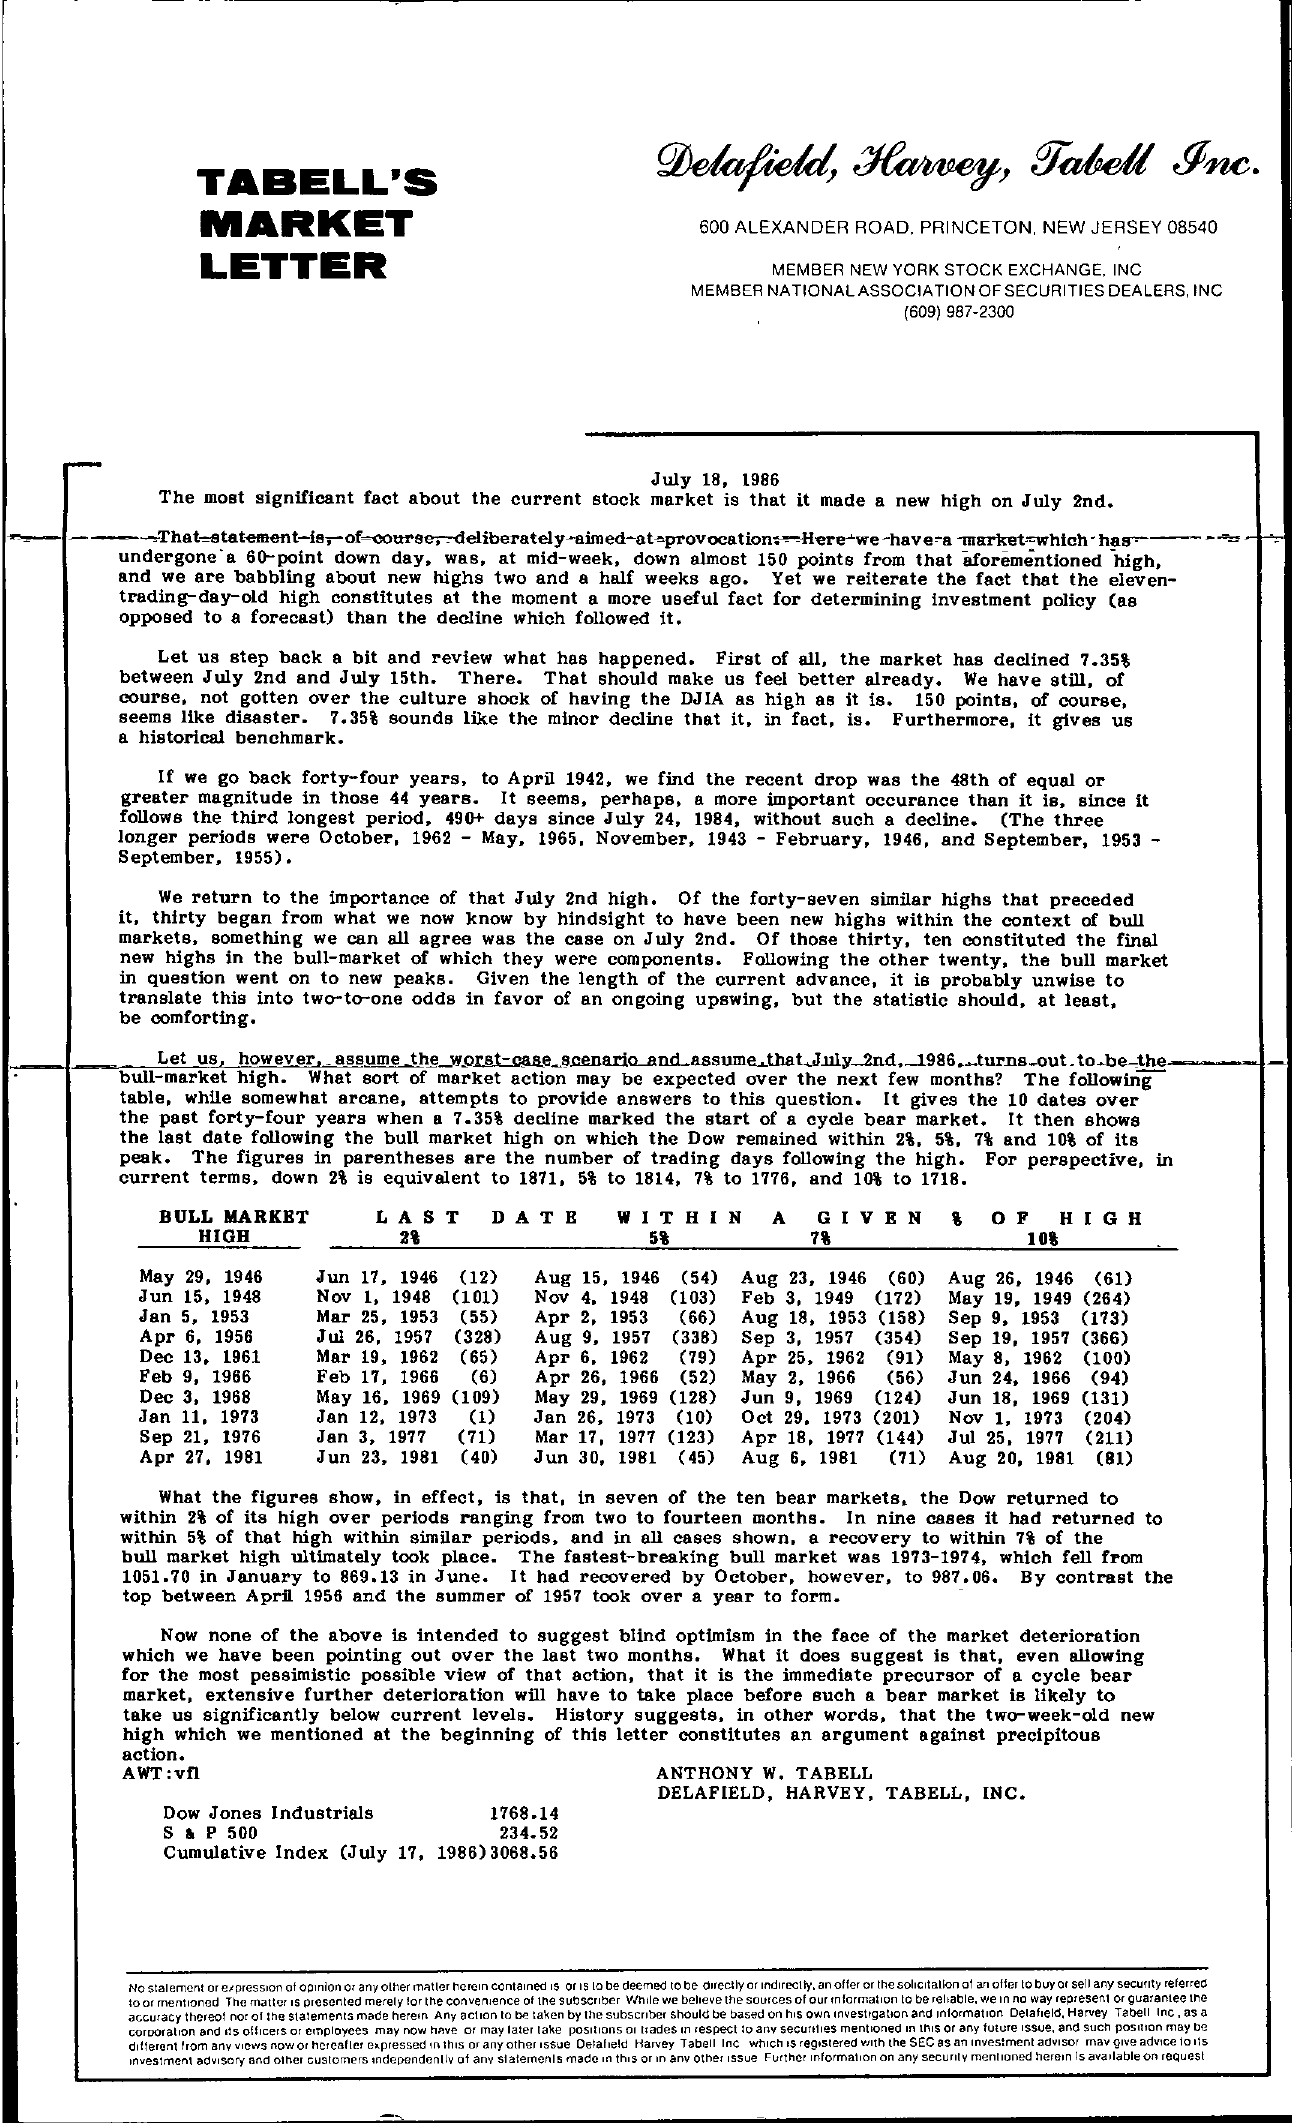 Tabell's Market Letter - July 18, 1986